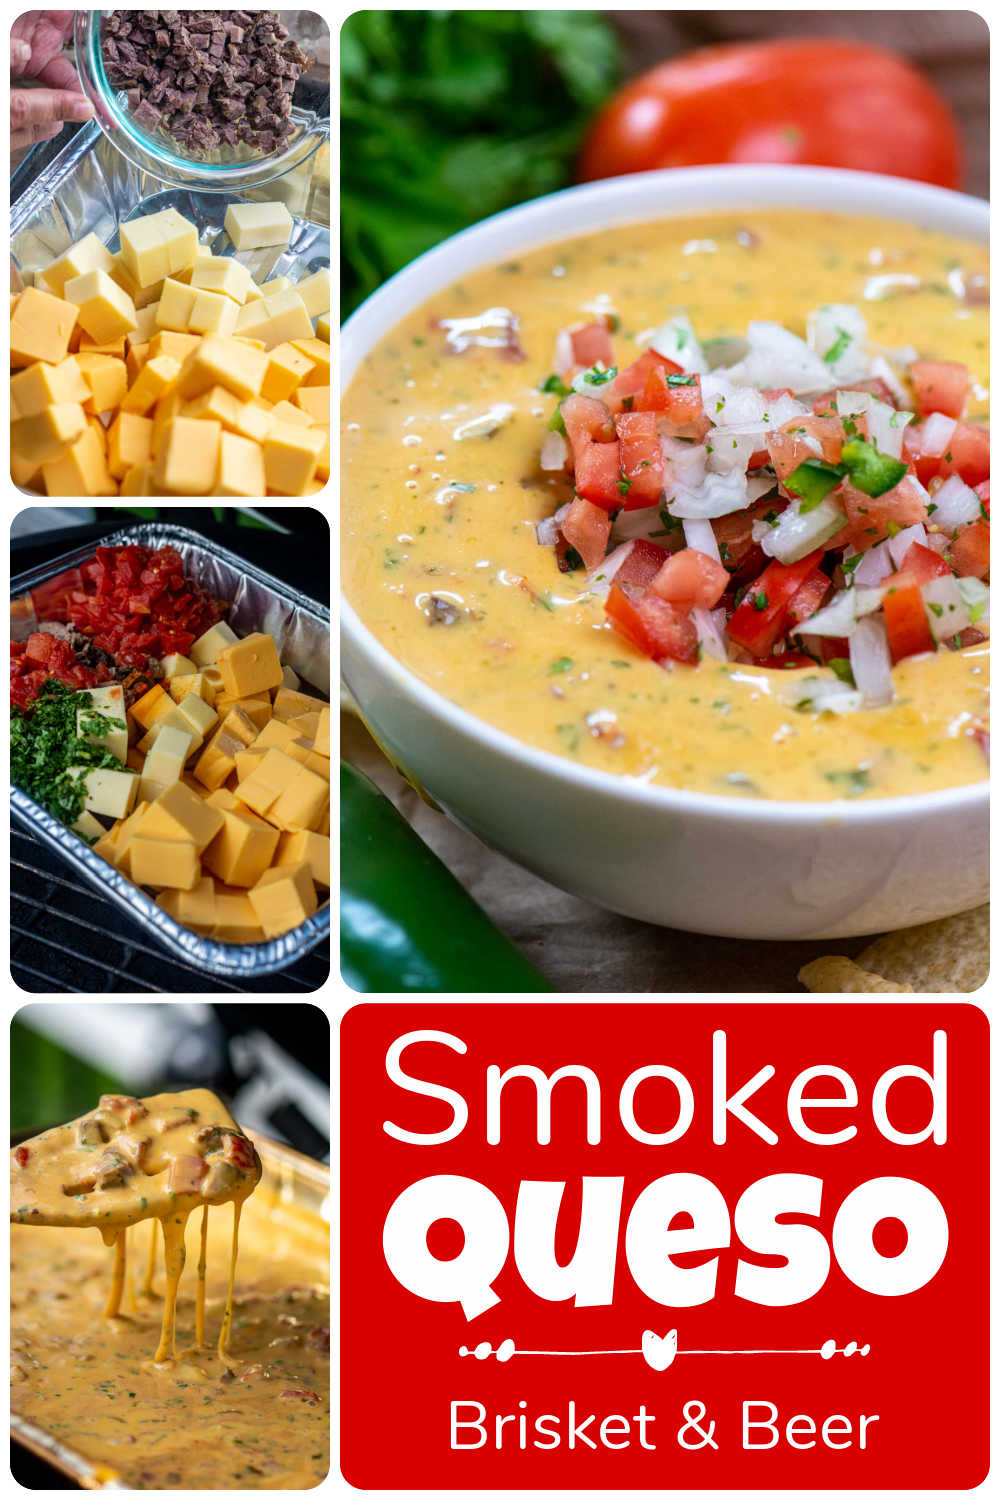 Smoked Brisket and Beer Queso